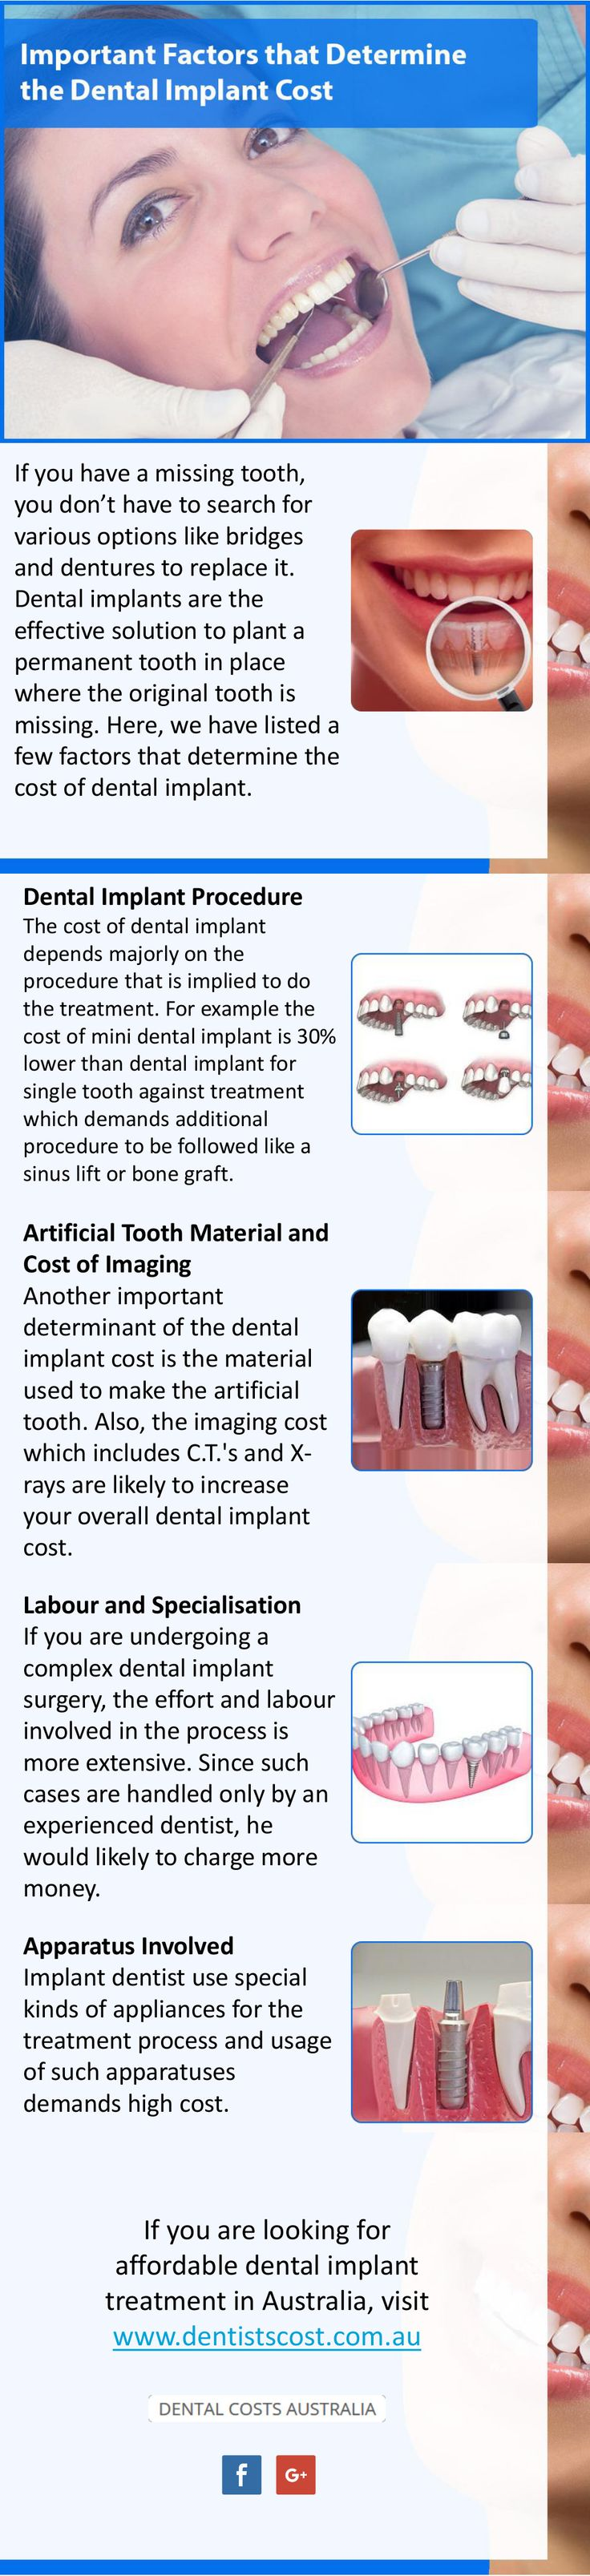 Important Factors that Affect the Dental Implant Cost in Australia - Getting a dental implant is becoming more affordable in Australia. Read this write up to find out the important factors that determine dental implant cost in Australia. Visit http://www.dentistscost.com.au/ for more information.